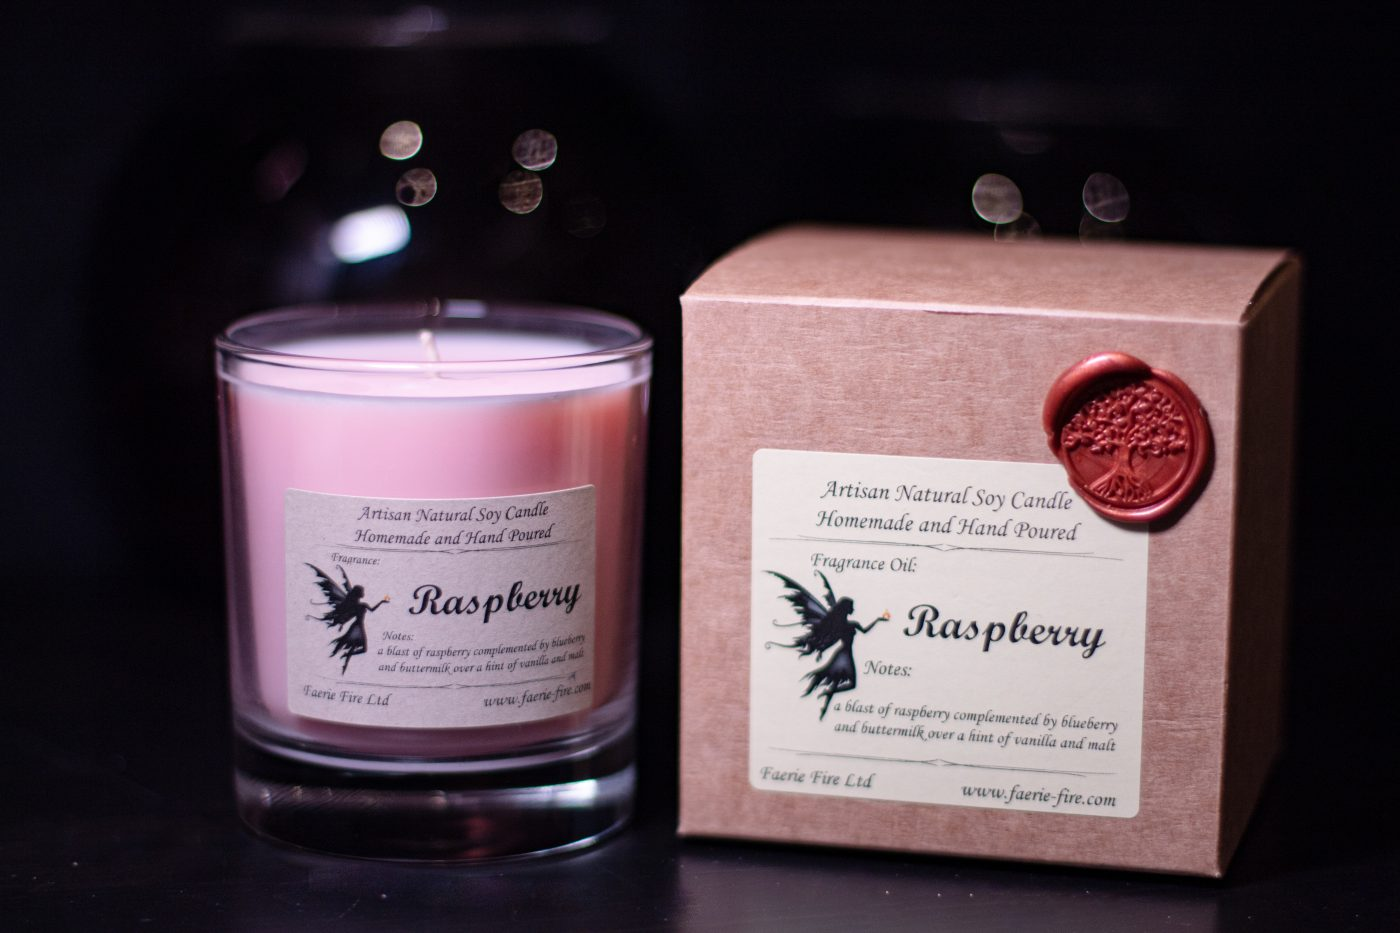 Raspberry pink soy wax candle in a clear glass beside a presentation box against a dark background